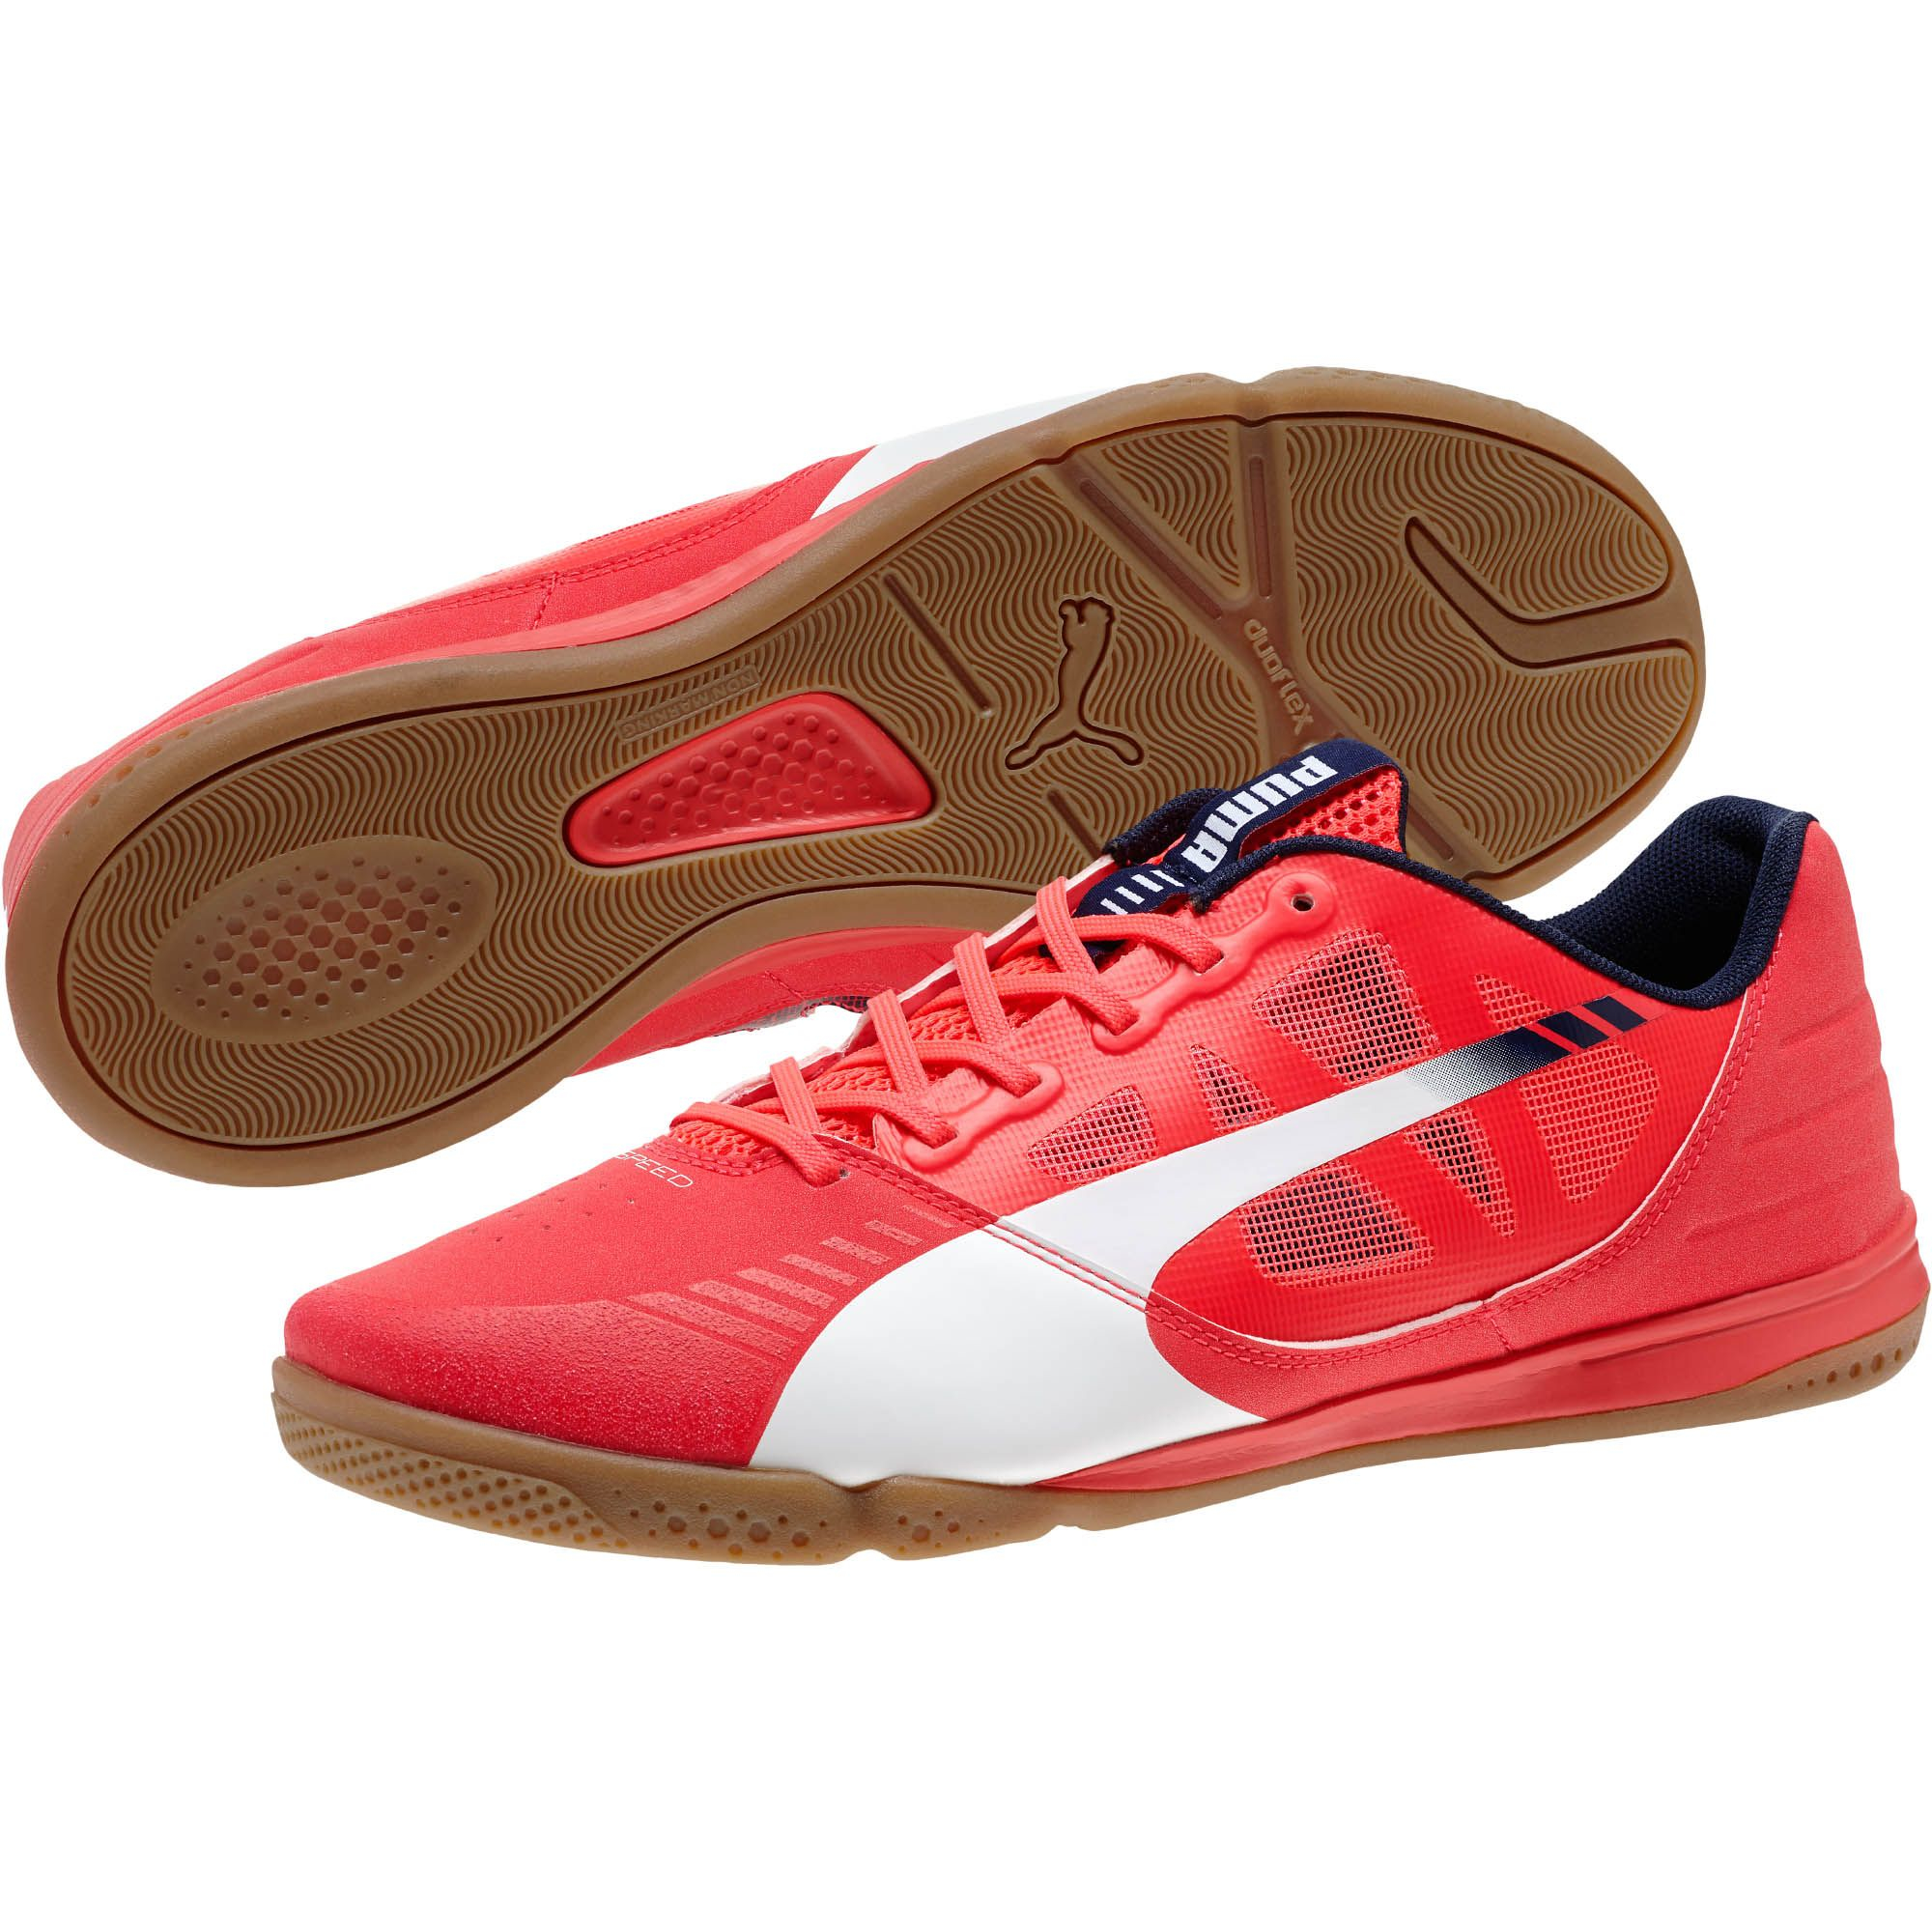 b8d9578b23bc PUMA Evospeed Sala Men's Indoor Soccer Shoes in Red for Men - Lyst